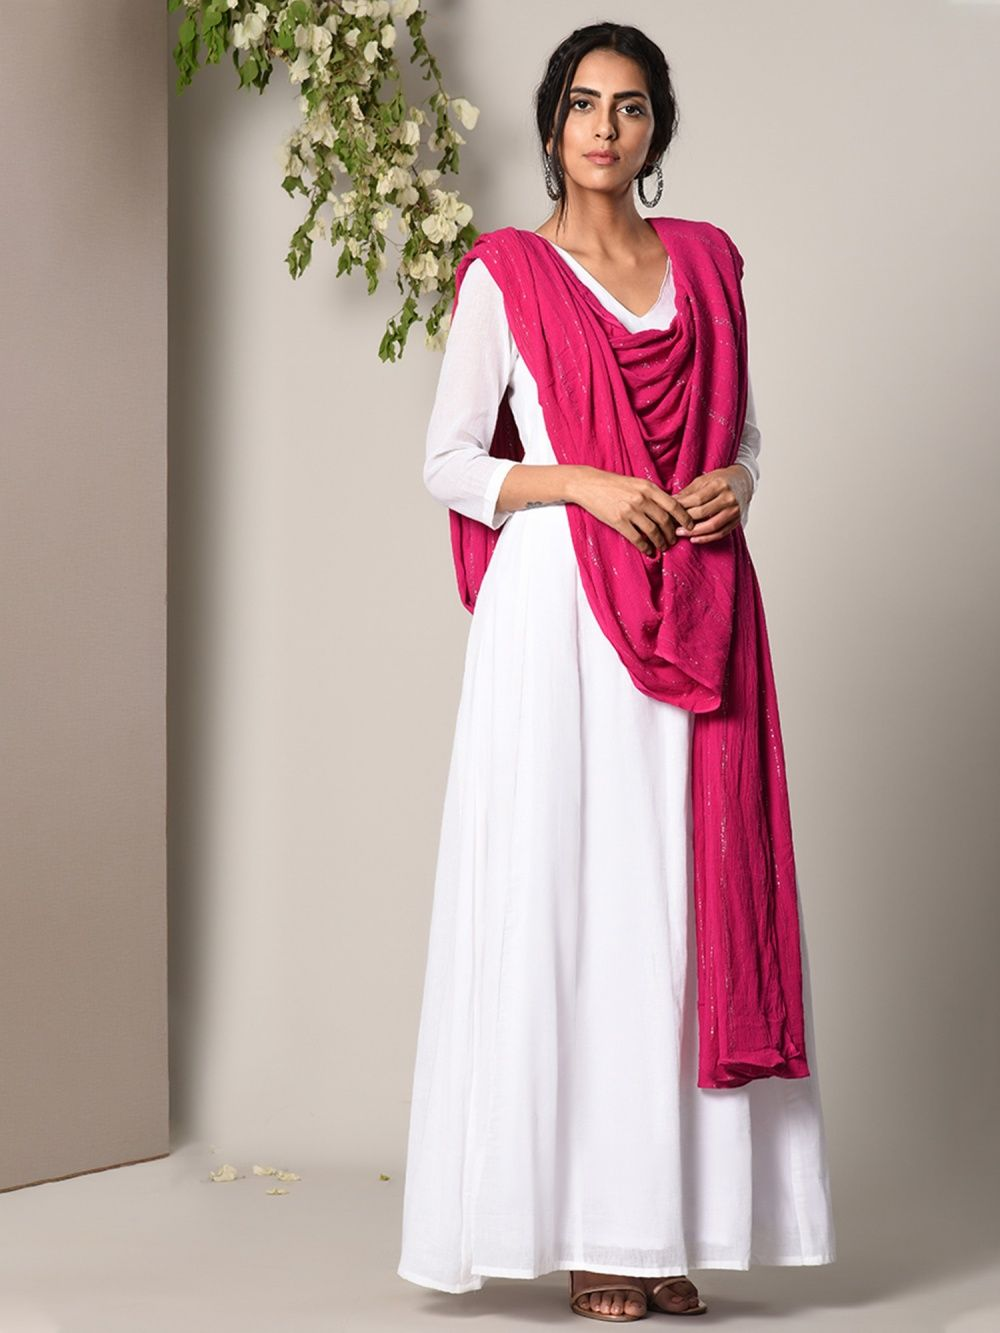 2340fab44f5 trueBrowns Salwar Suits and Sets   Buy trueBrowns White Dress Pink ...